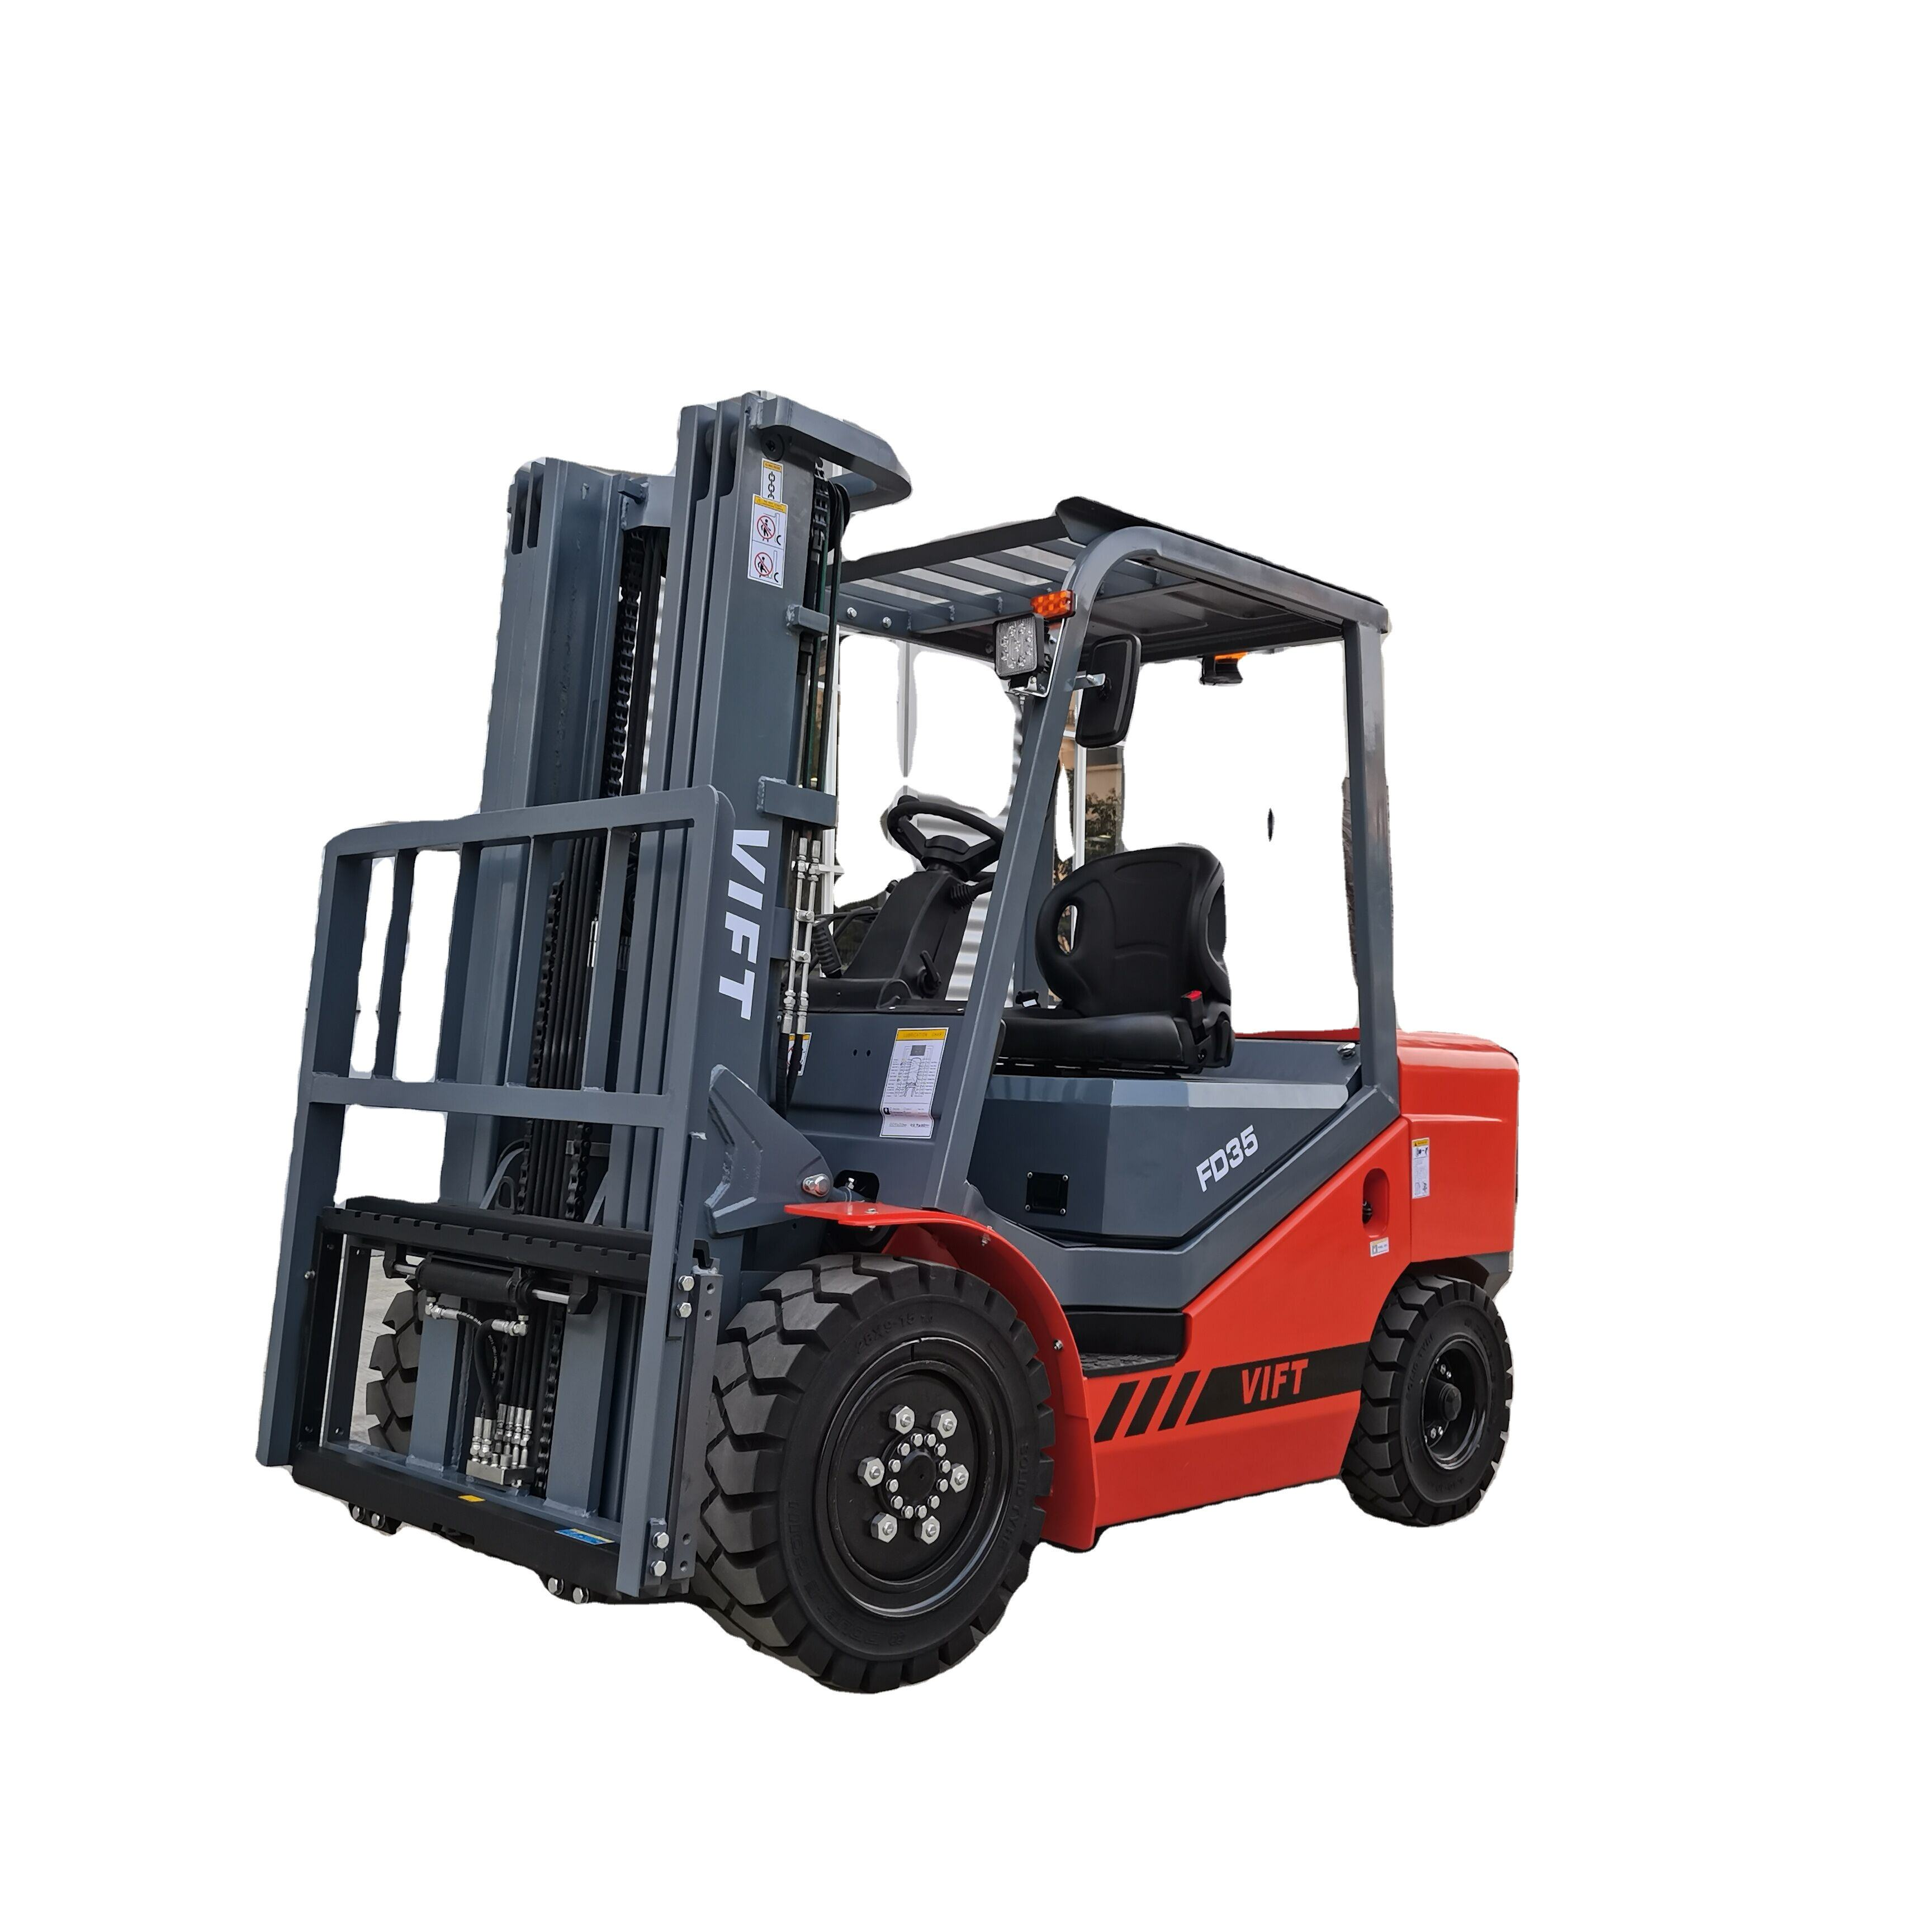 Diesel forklift with hot sell